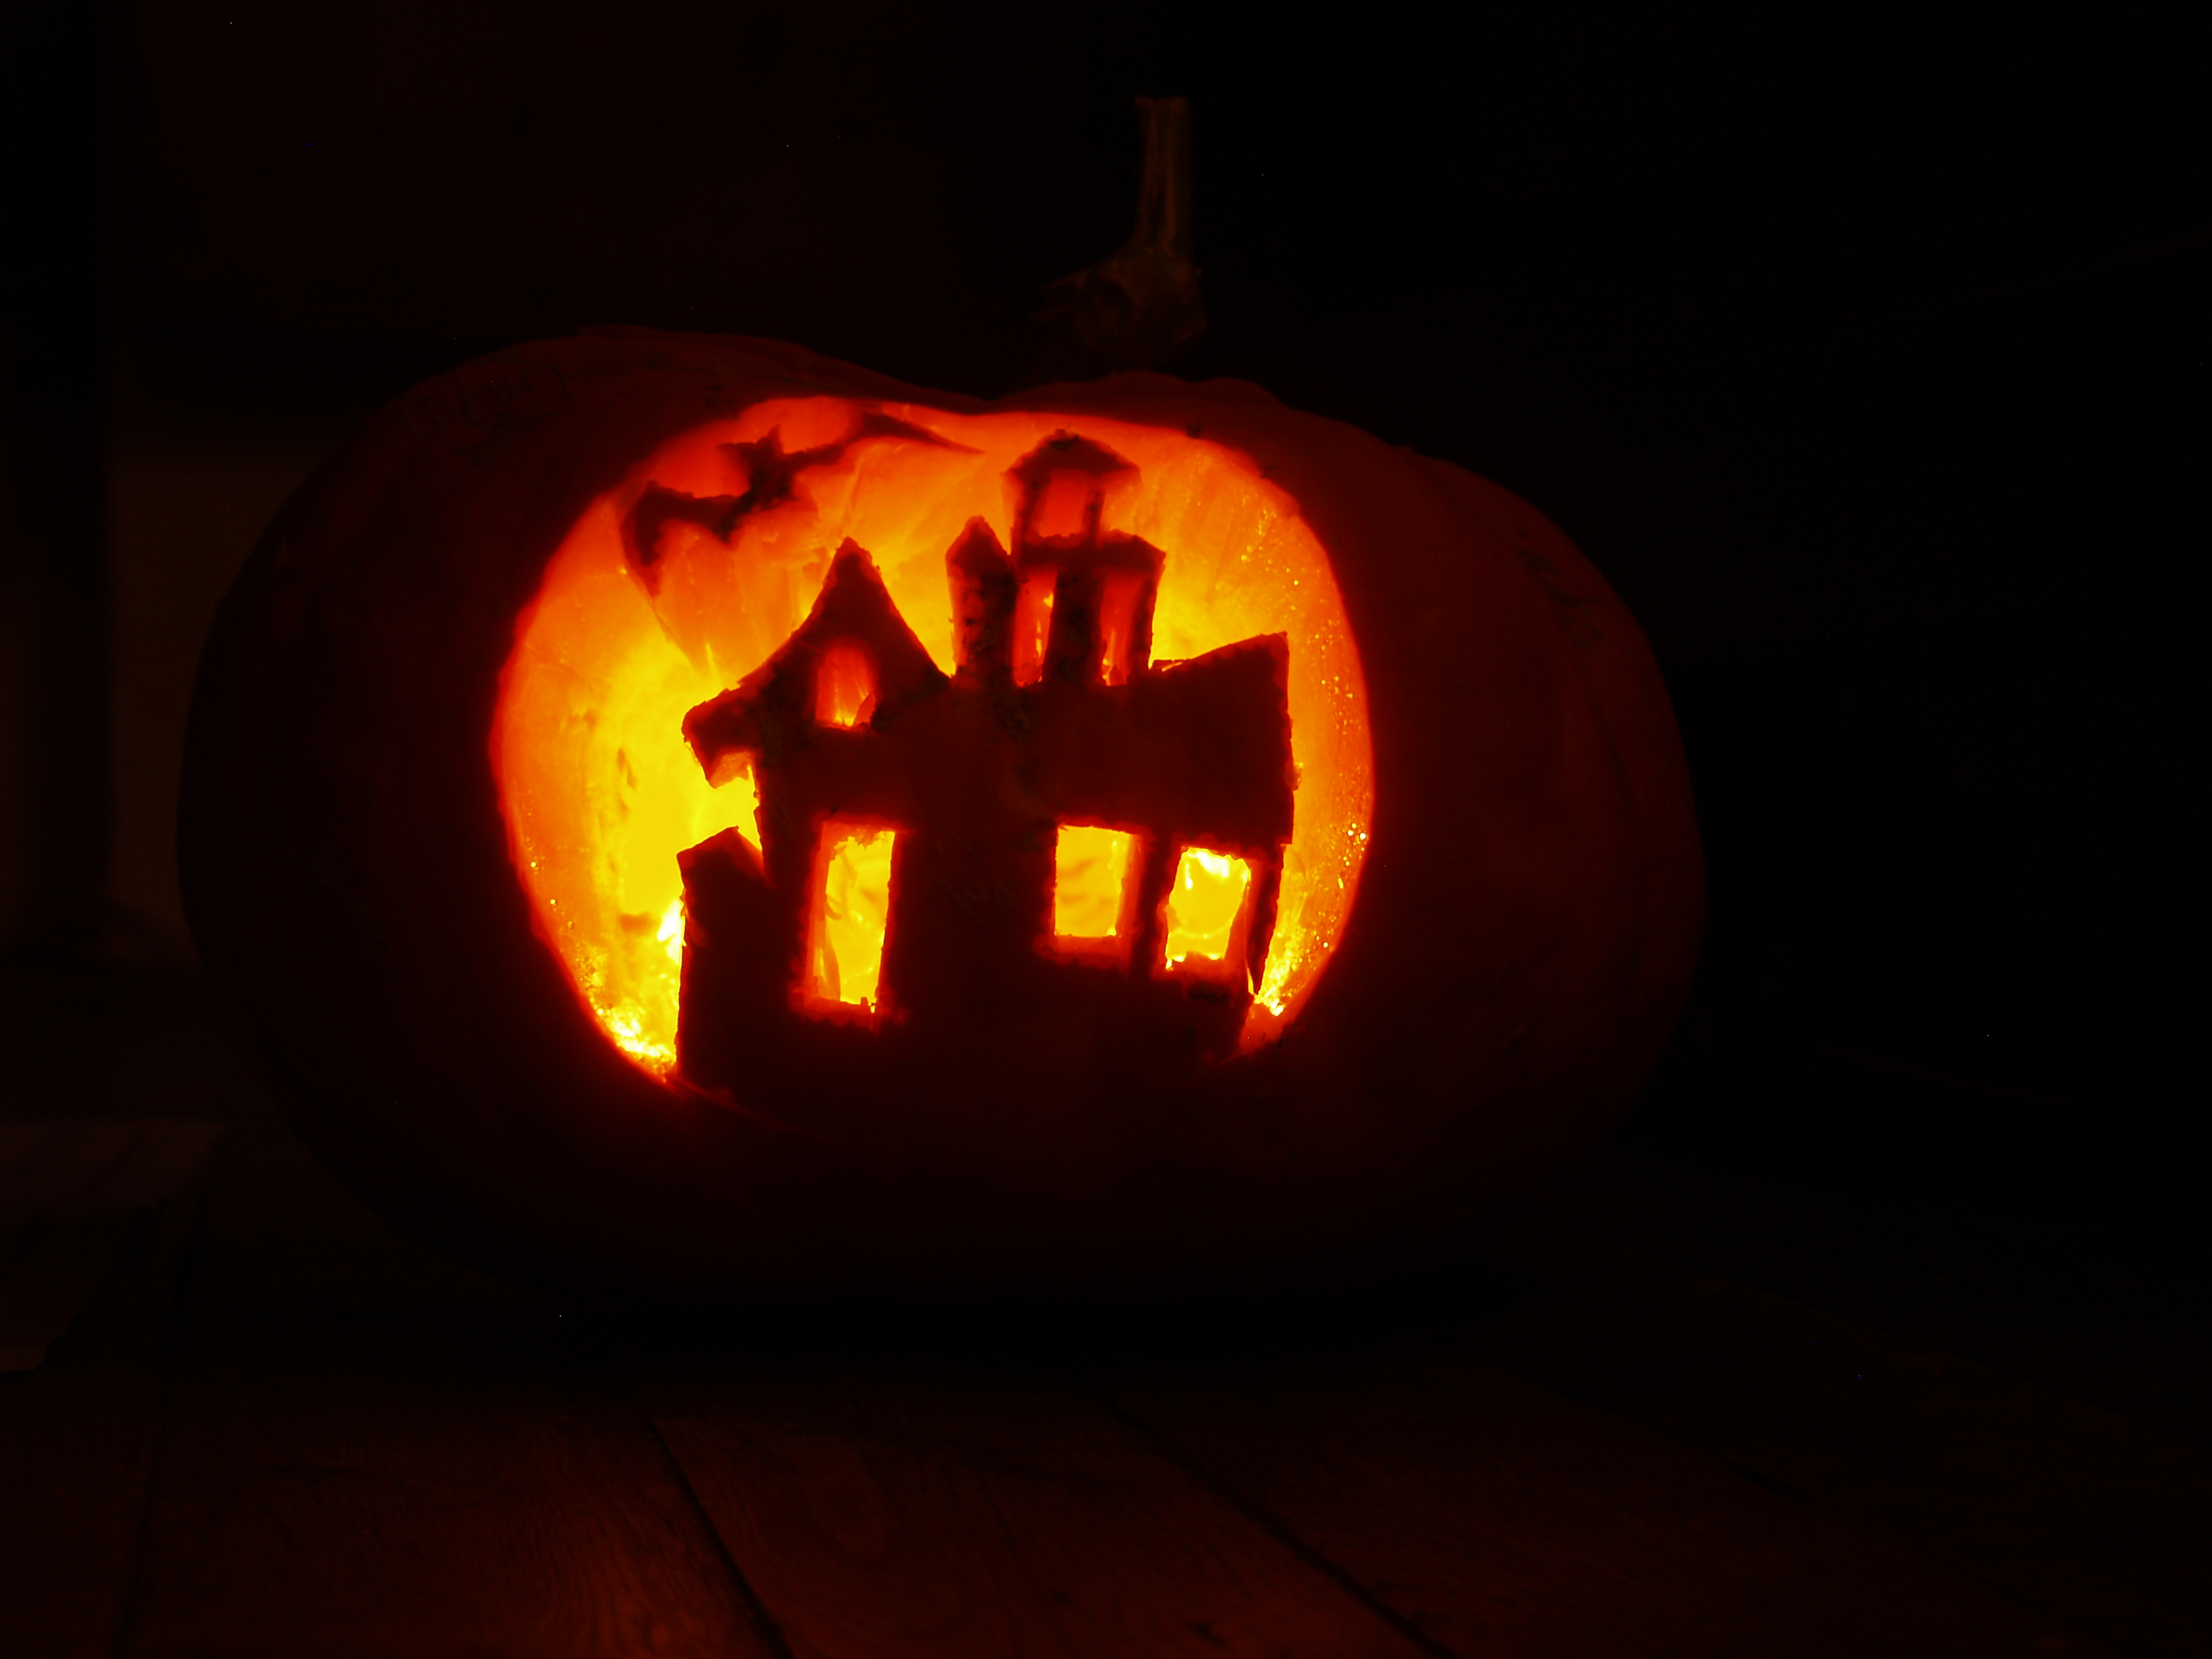 File:Pumpkin Craft For Halloween.JPG